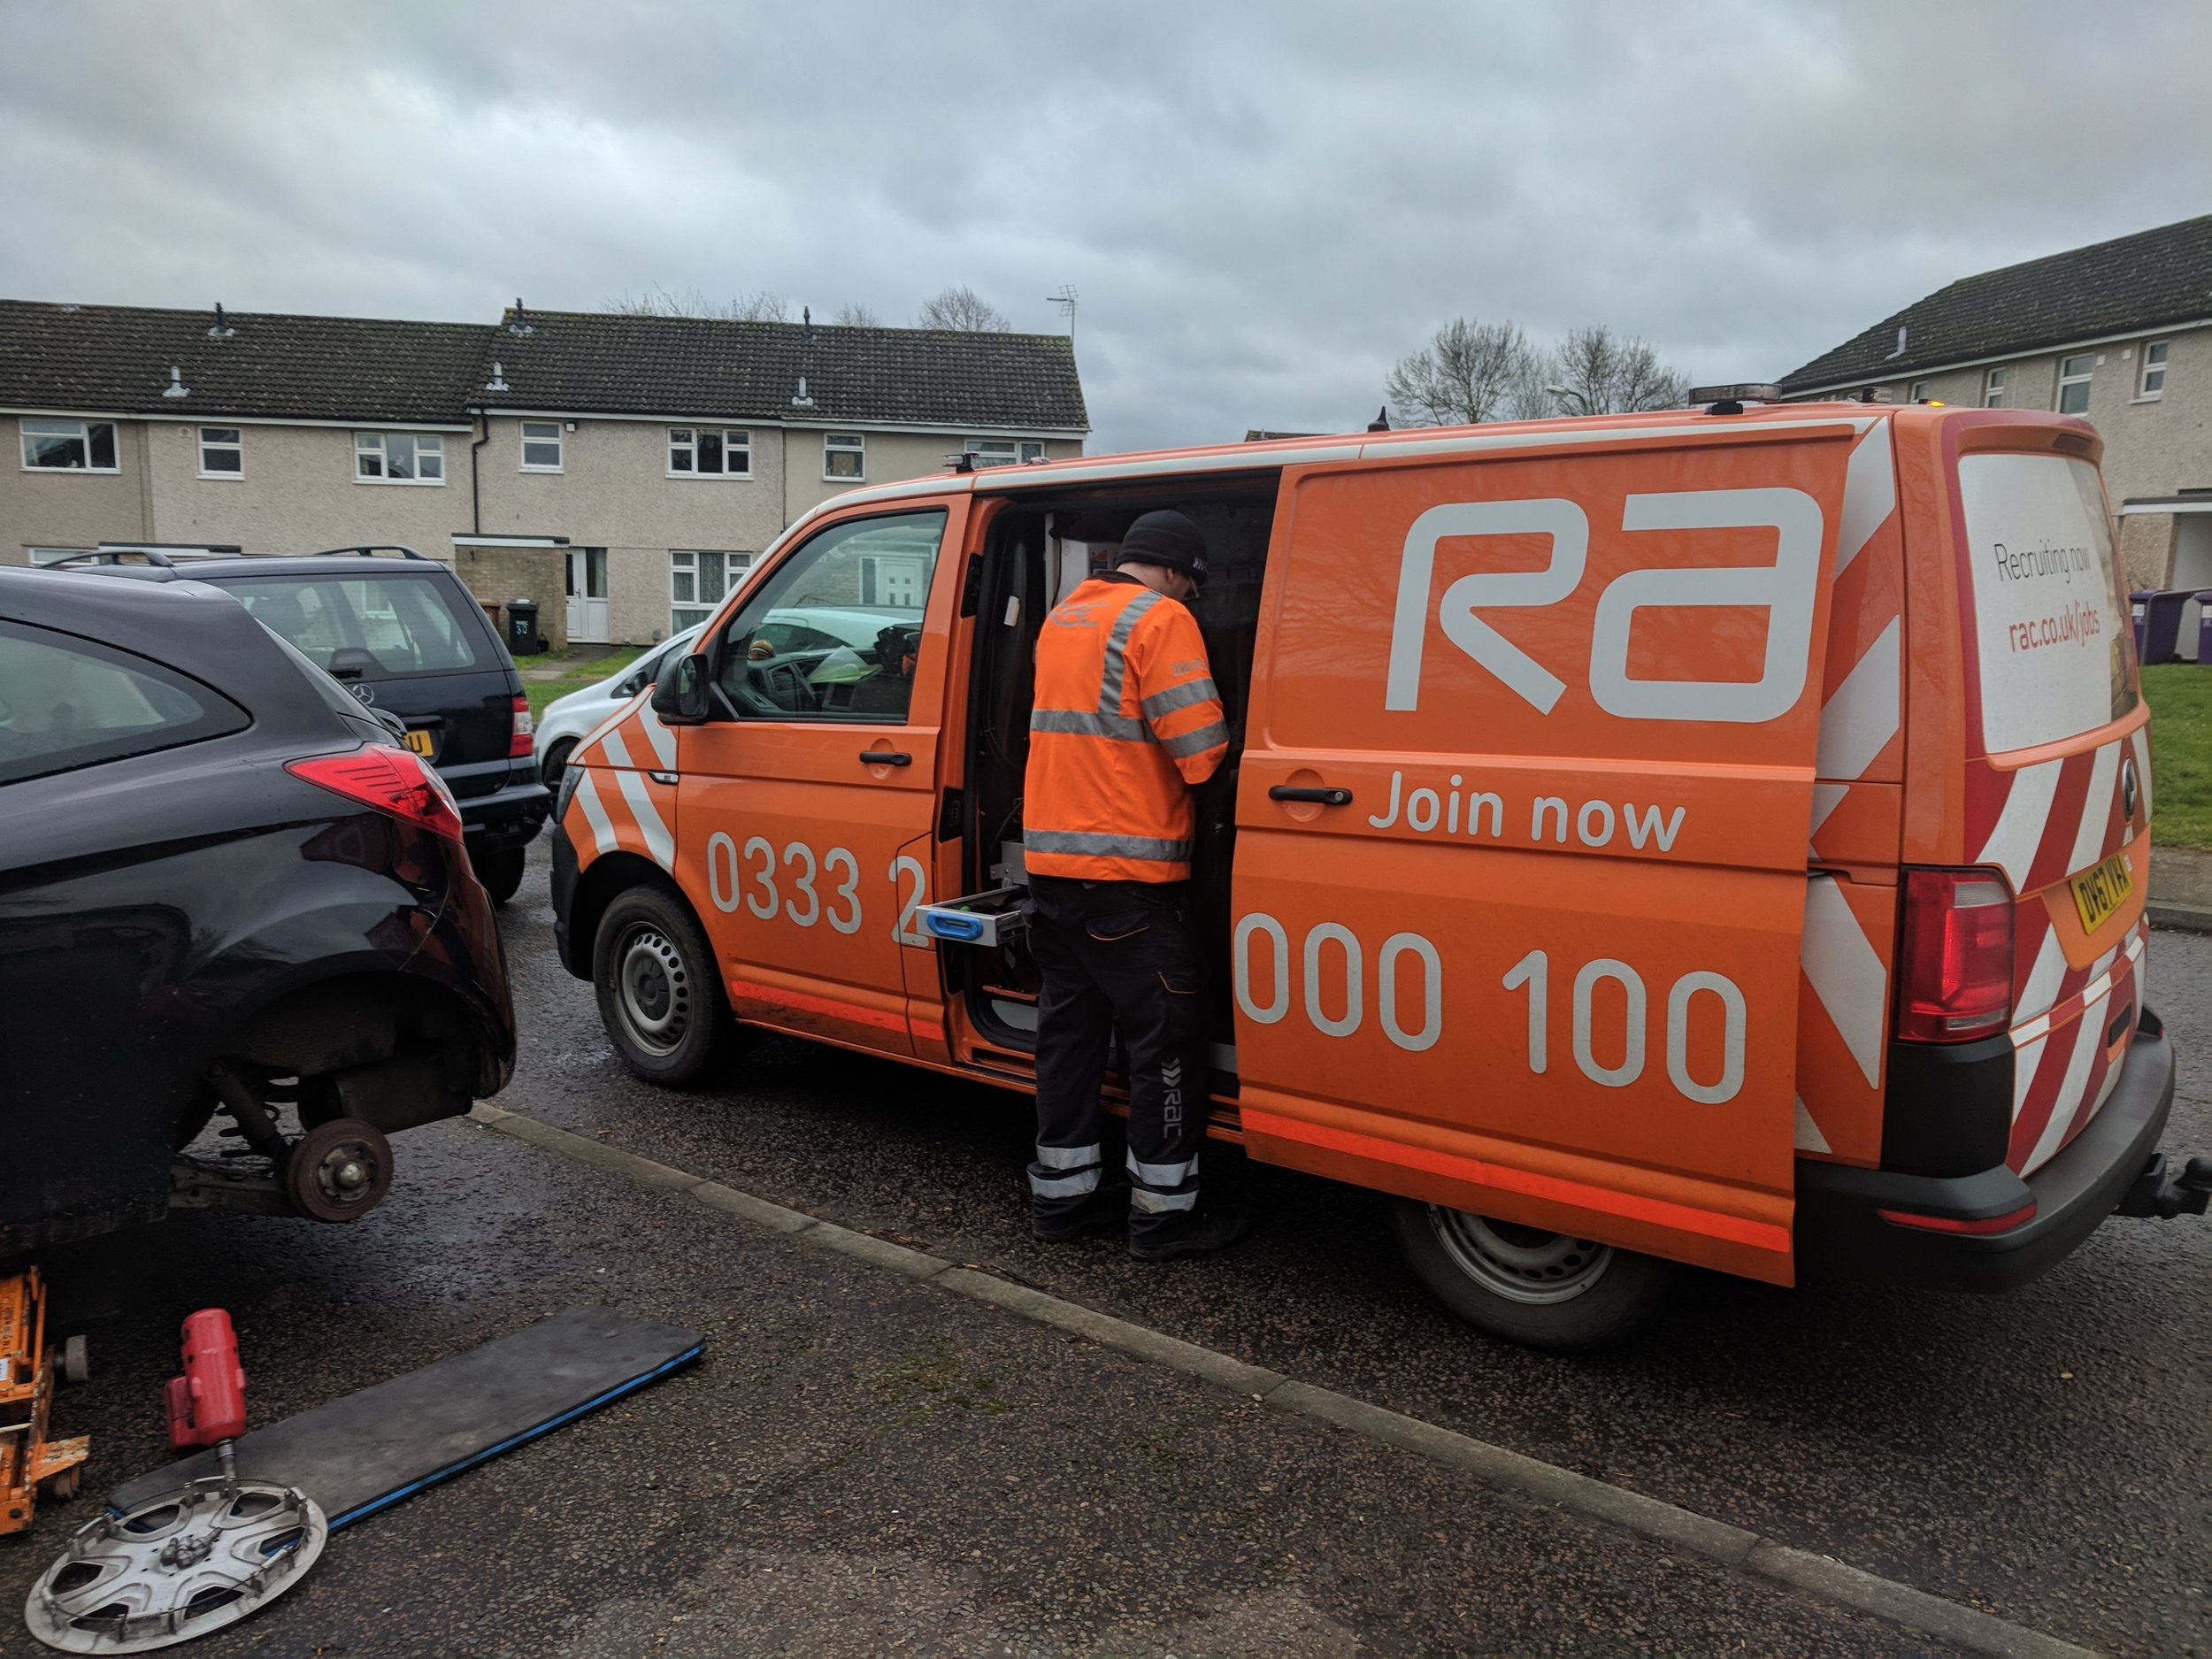 rac van by car with flat tyre